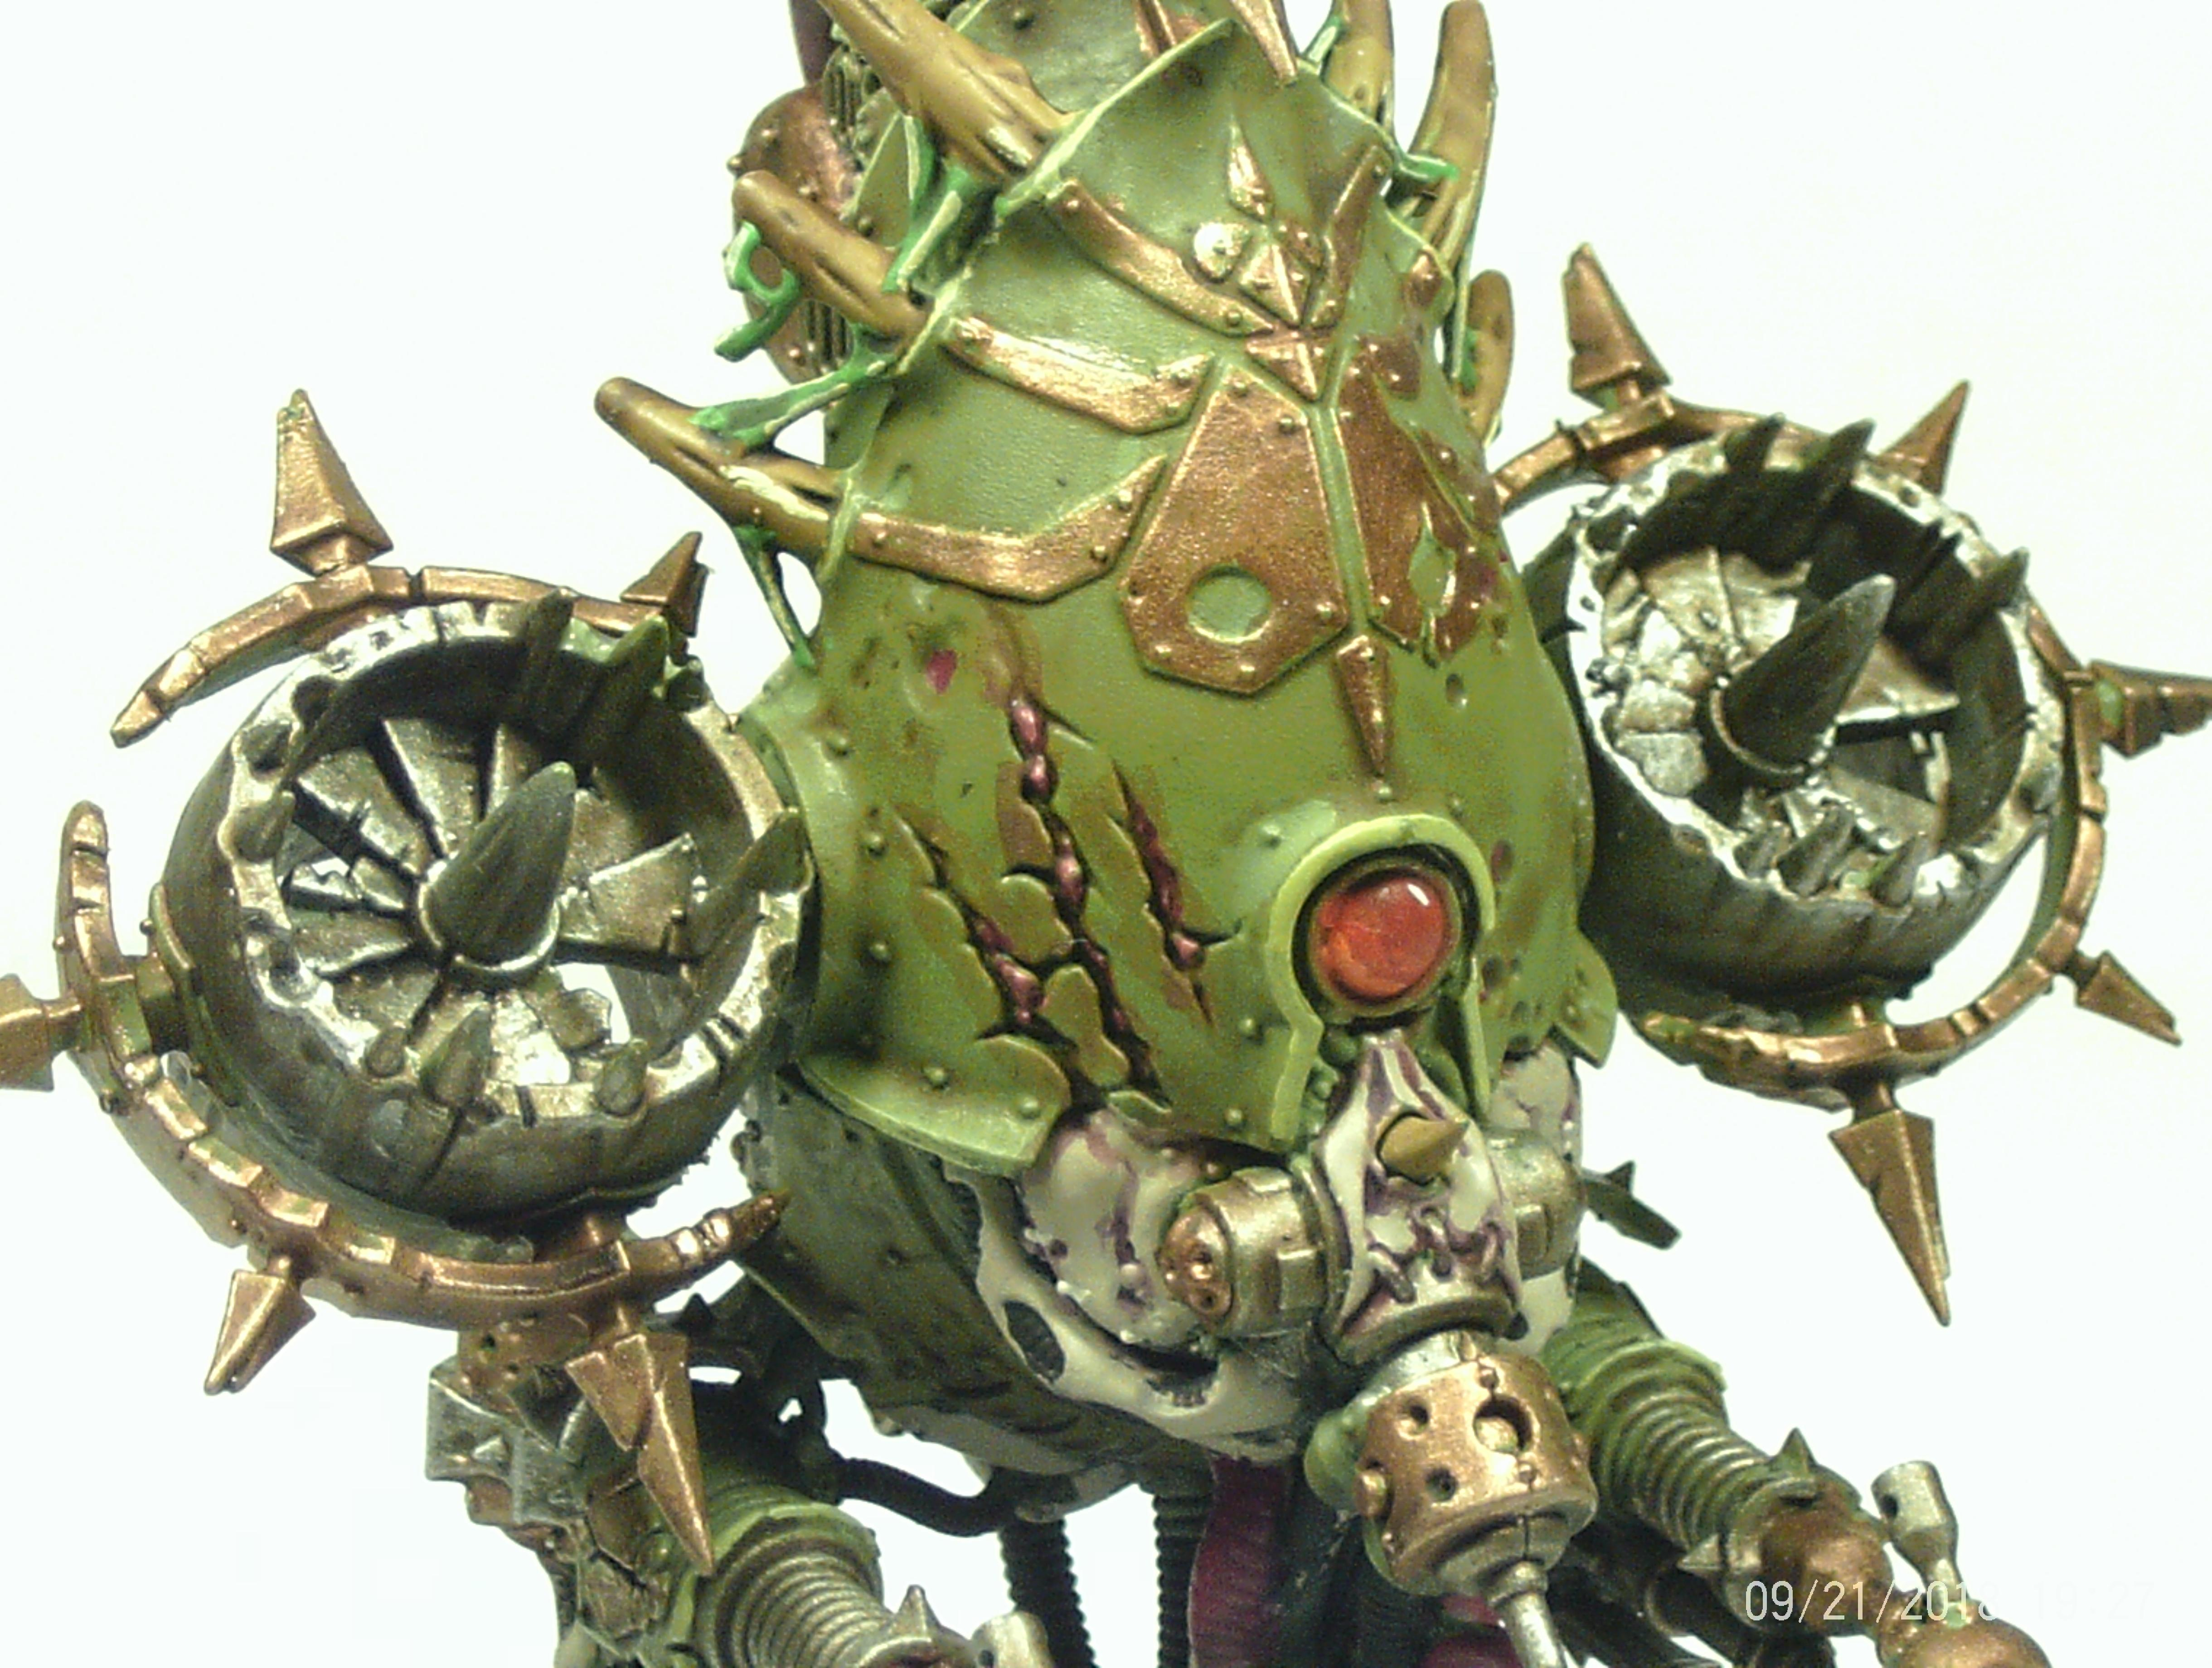 Bloat, Chaos, Death, Drone, Foetid, Guard, Hover, Nurgle, Plague